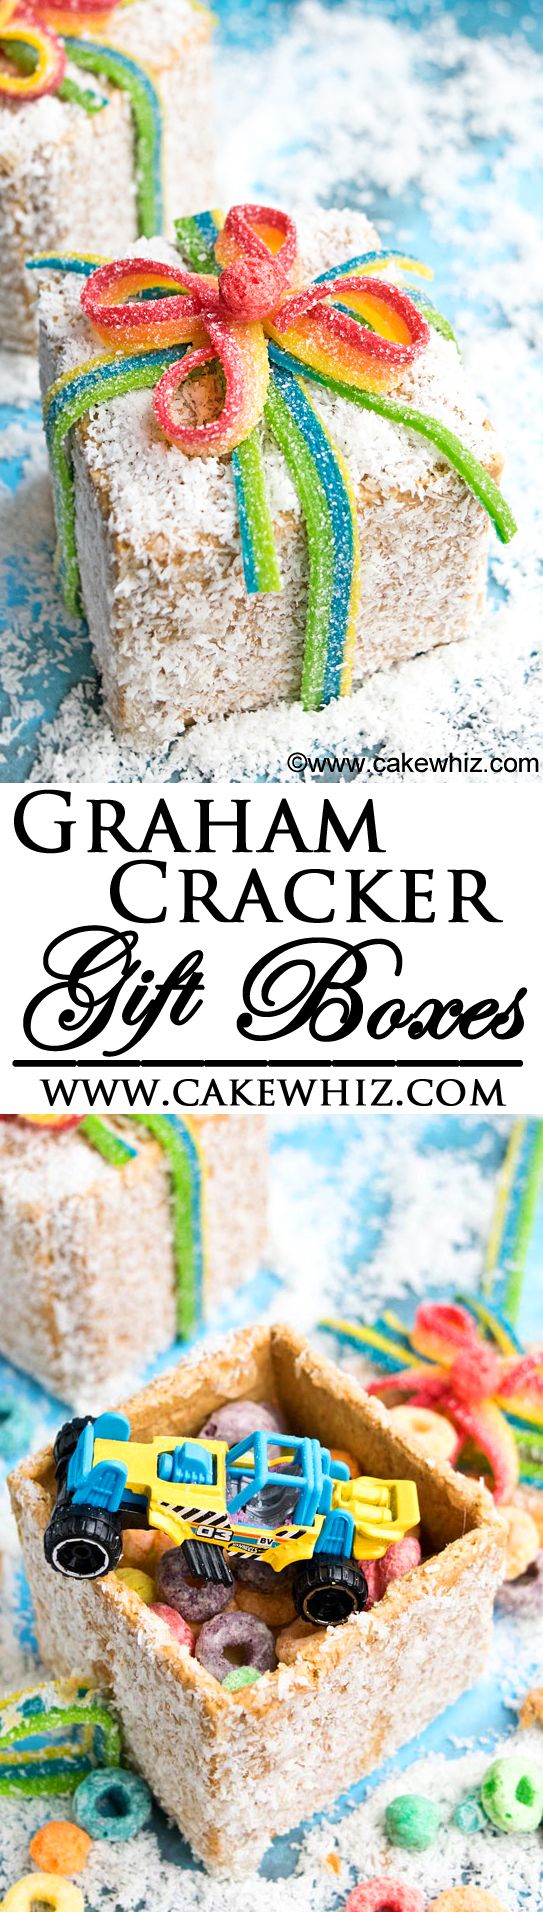 Fun and completely edible GRAHAM CRACKER GIFT BOXES with hidden snacks and toys. So much fun to make for kids during Christmas. {Ad} From cakewhiz.com